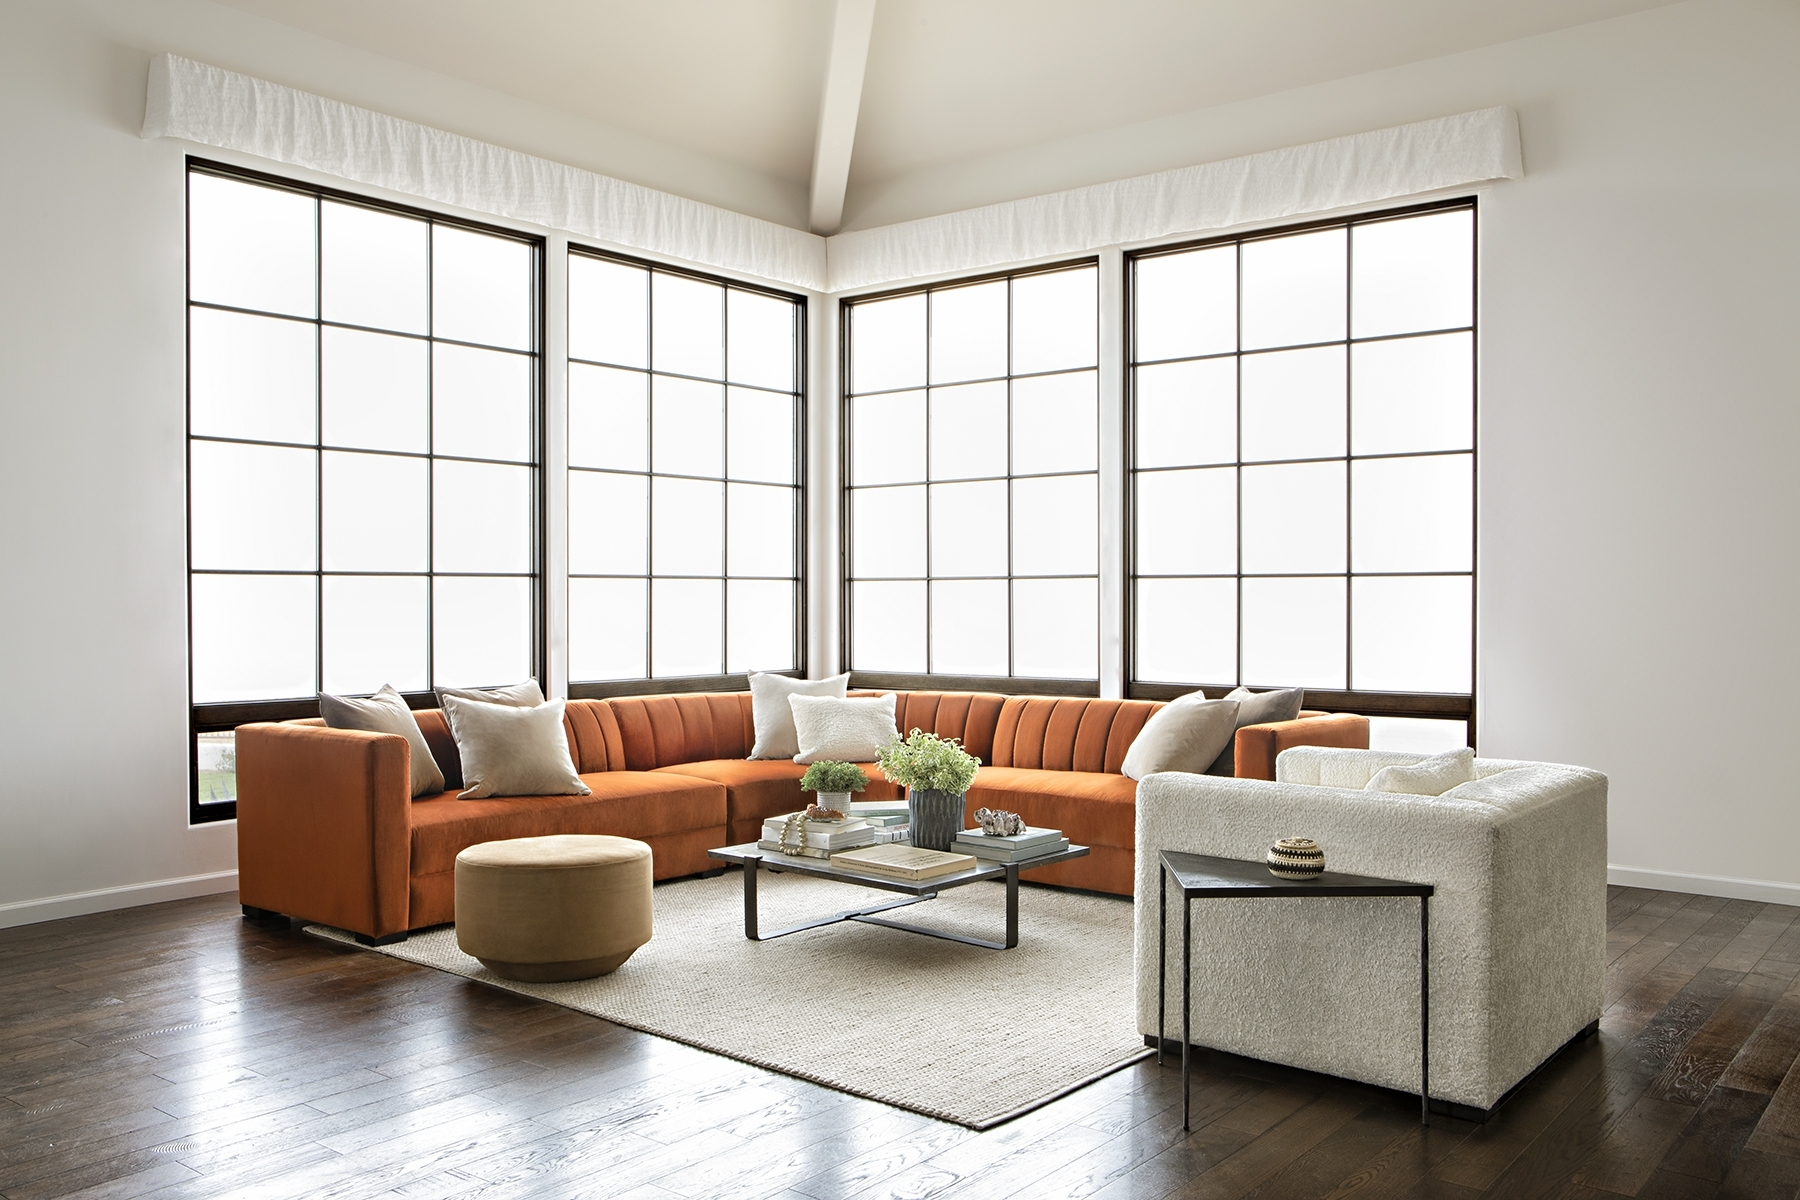 Nate Berkus & Jeremiah Brent's Newest Affordable Collection | Rue Intended For Whitley 3 Piece Sectionals By Nate Berkus And Jeremiah Brent (View 16 of 25)